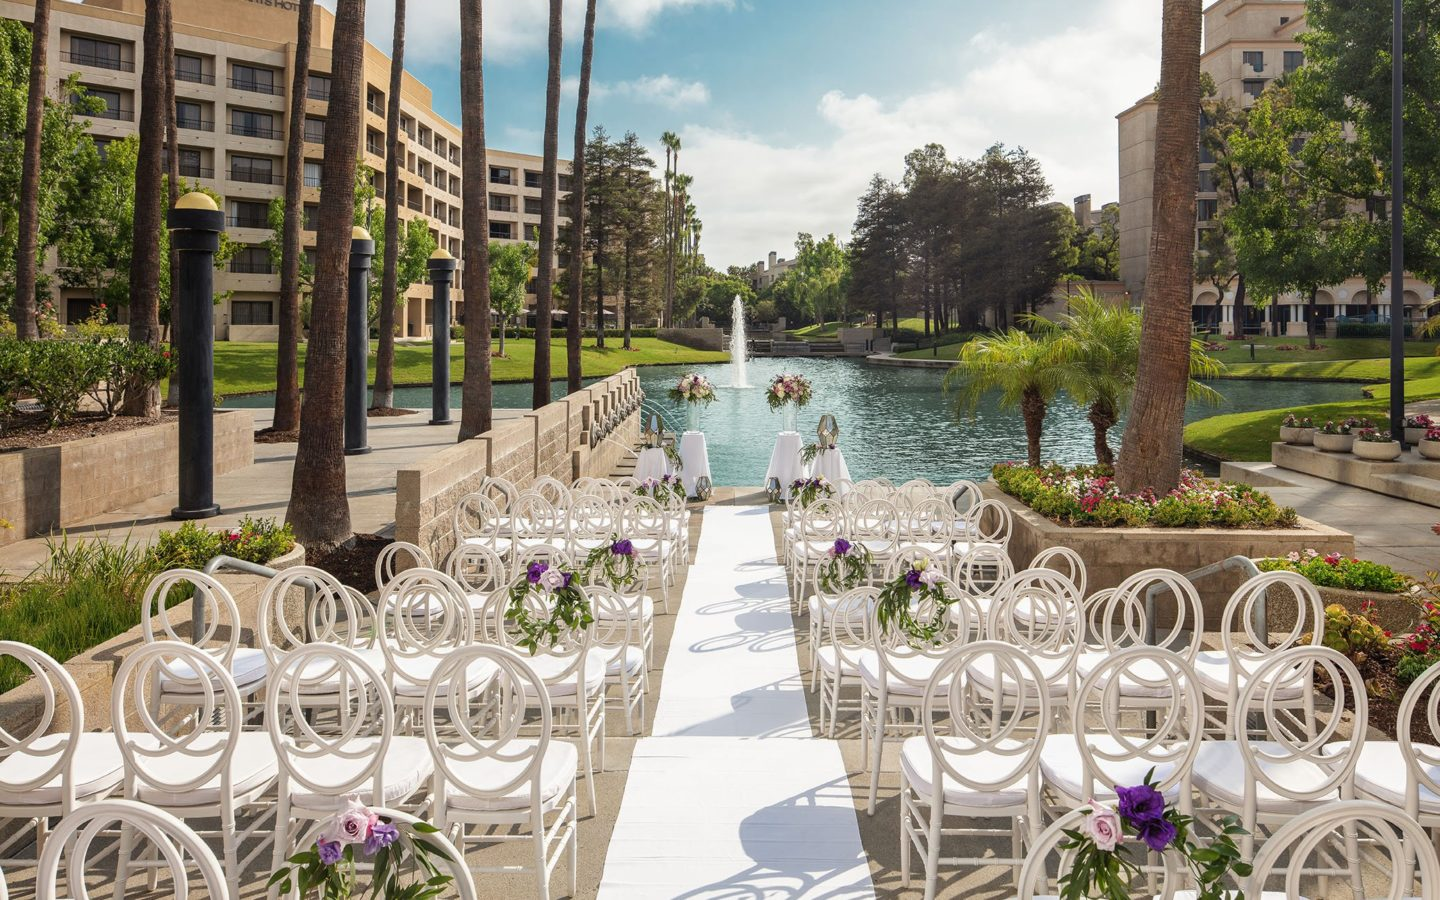 Chairs setup for wedding in front of lake